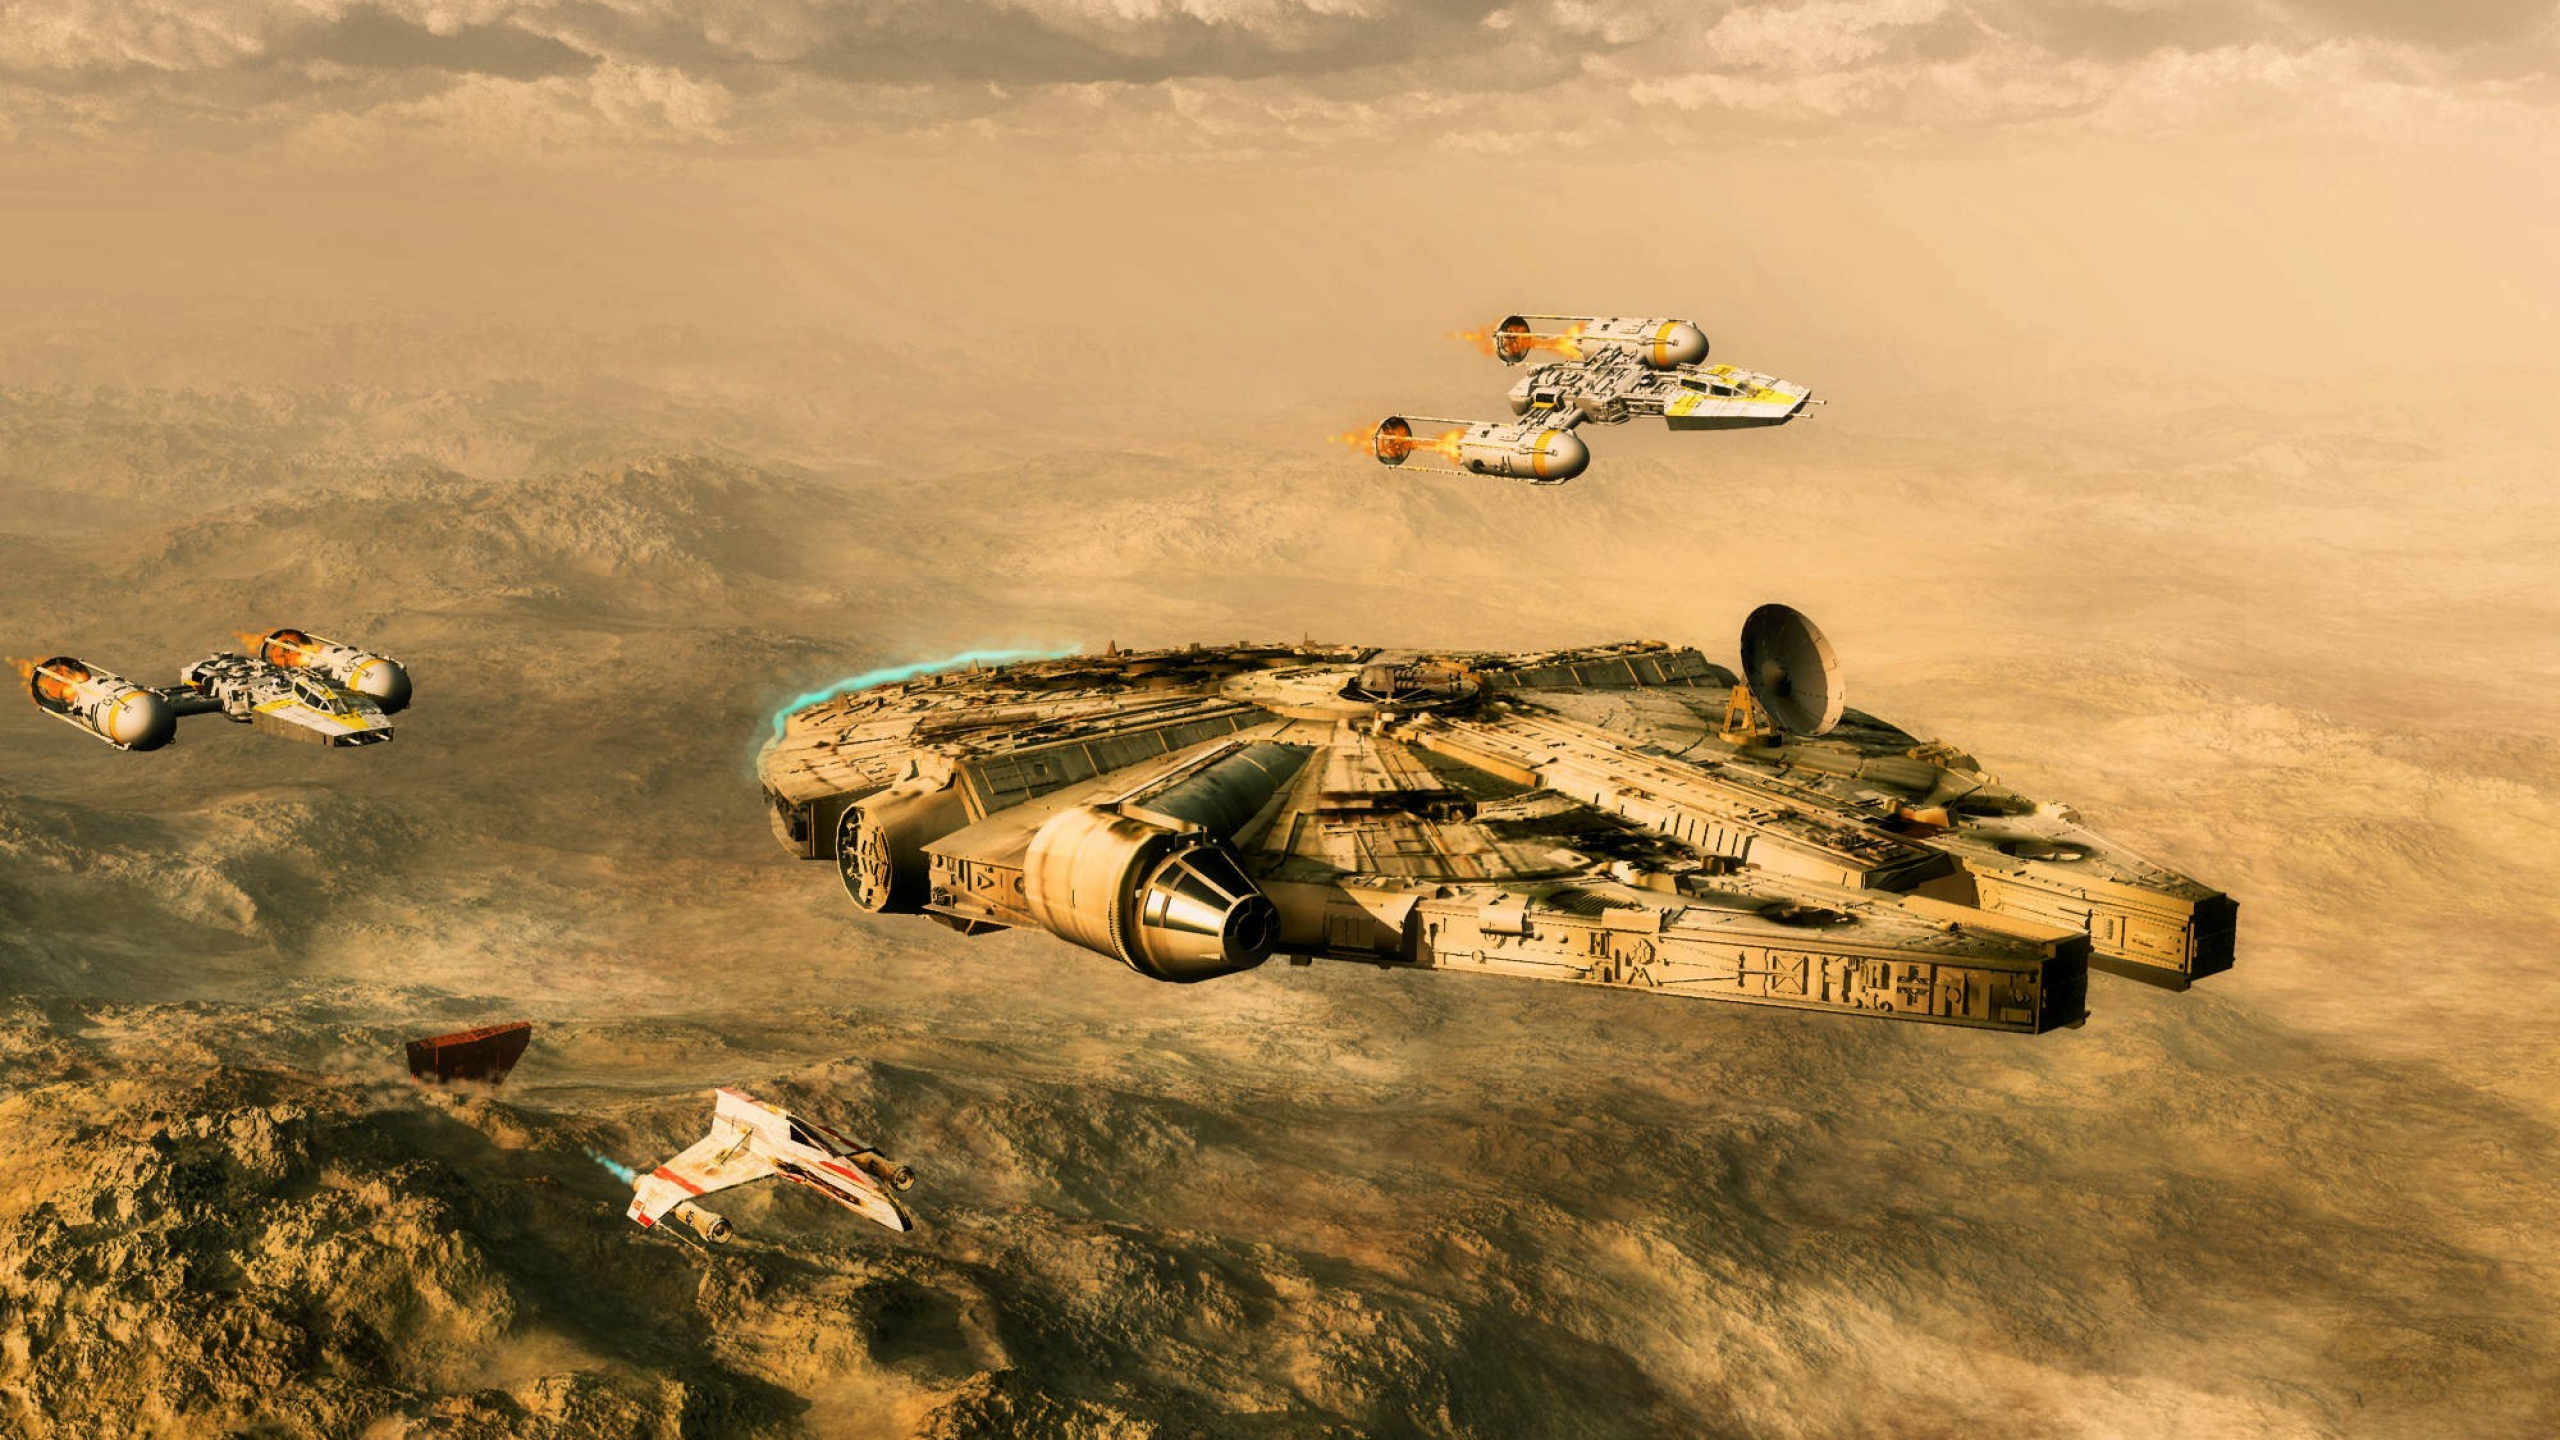 Download 2560x1440 Star Wars Millennium Falcon Y Wing Wallpapers